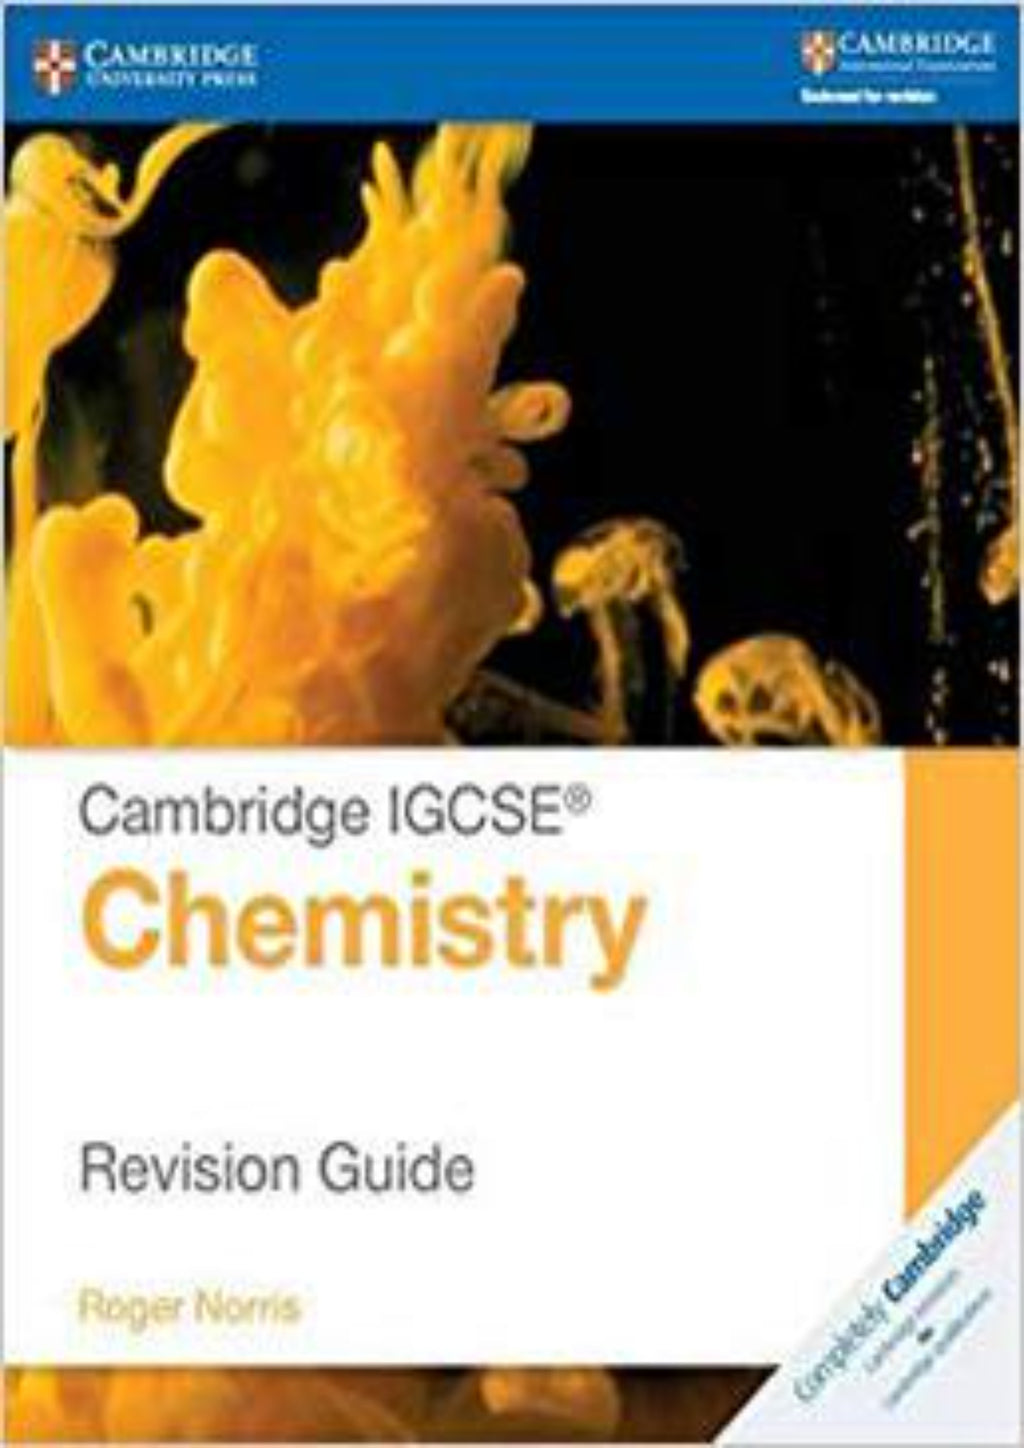 Cambridge IGCSE Chemistry (0620) Revision Guide